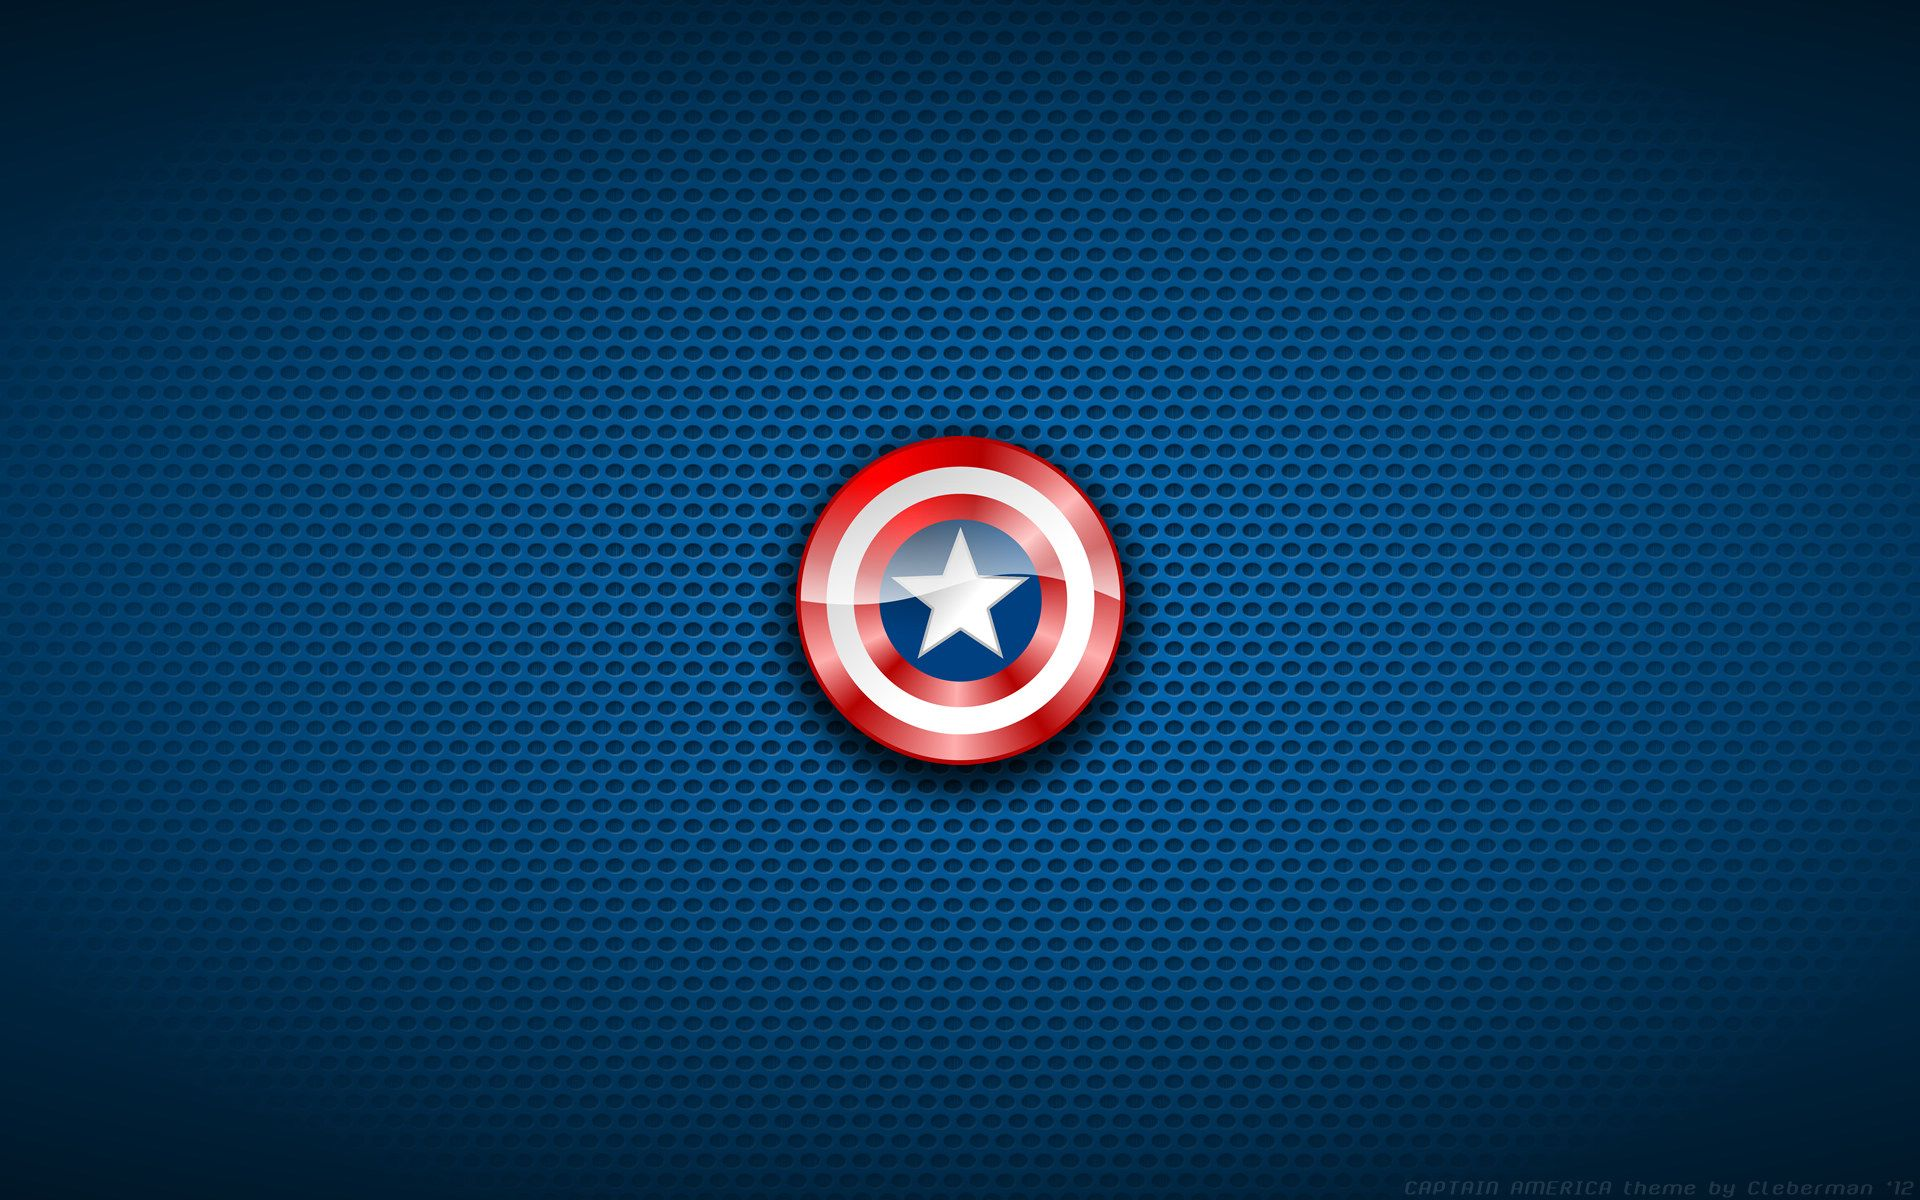 Superhero logo wallpapers google search super hero pinterest superhero logo wallpapers google search voltagebd Choice Image